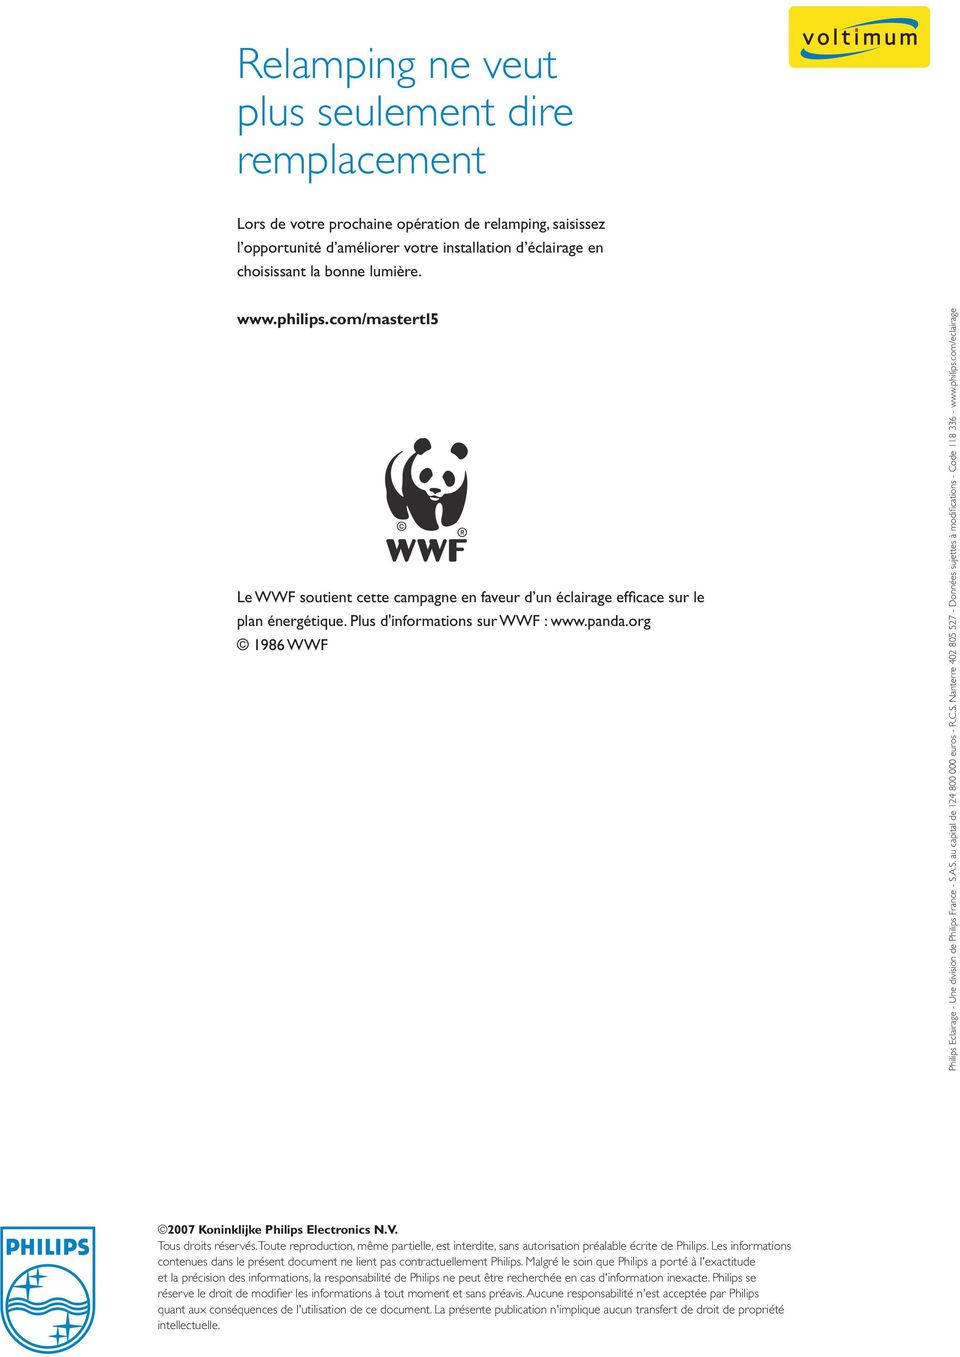 org 1986 WWF Philips Eclairage - Une division de Philips France - S.A.S. au capital de 124 800 000 euros - R.C.S. Nanterre 402 805 527 - Données sujettes à modifications - Code 118 336 - www.philips.